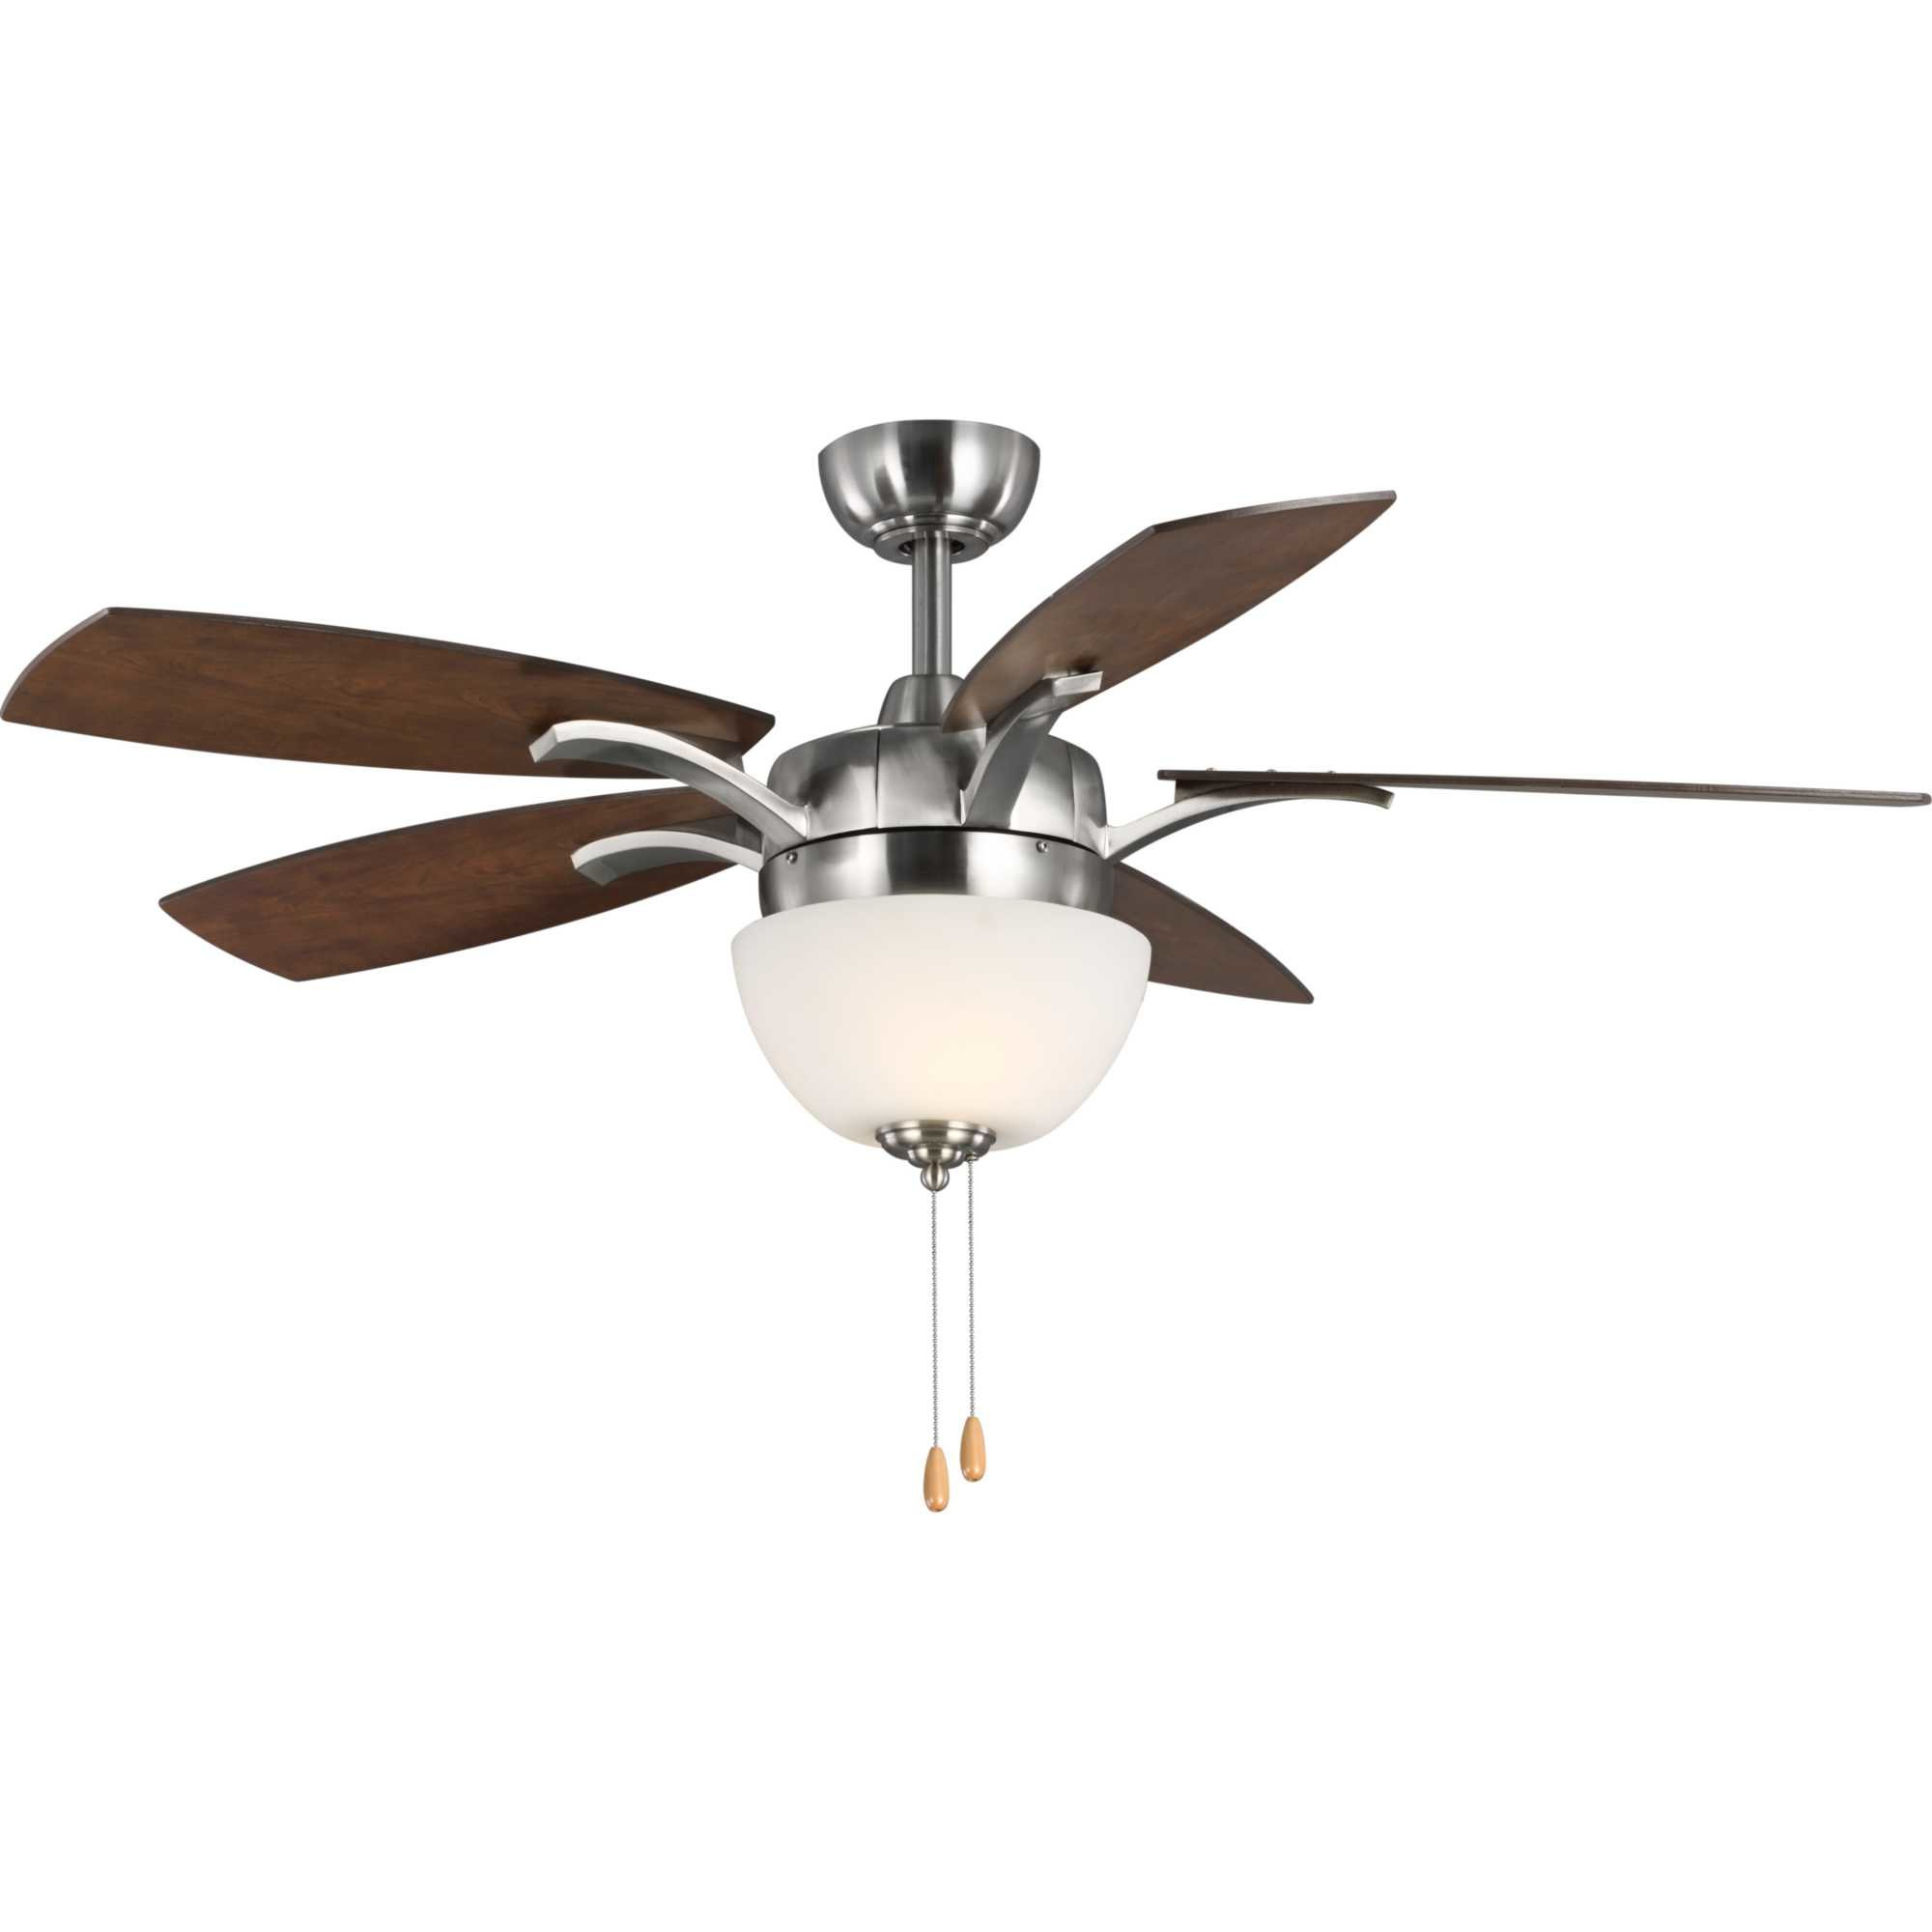 """Newest 52"""" Tani 5 Blade Ceiling Fan In Crumbley 5 Blade Ceiling Fans (View 2 of 20)"""